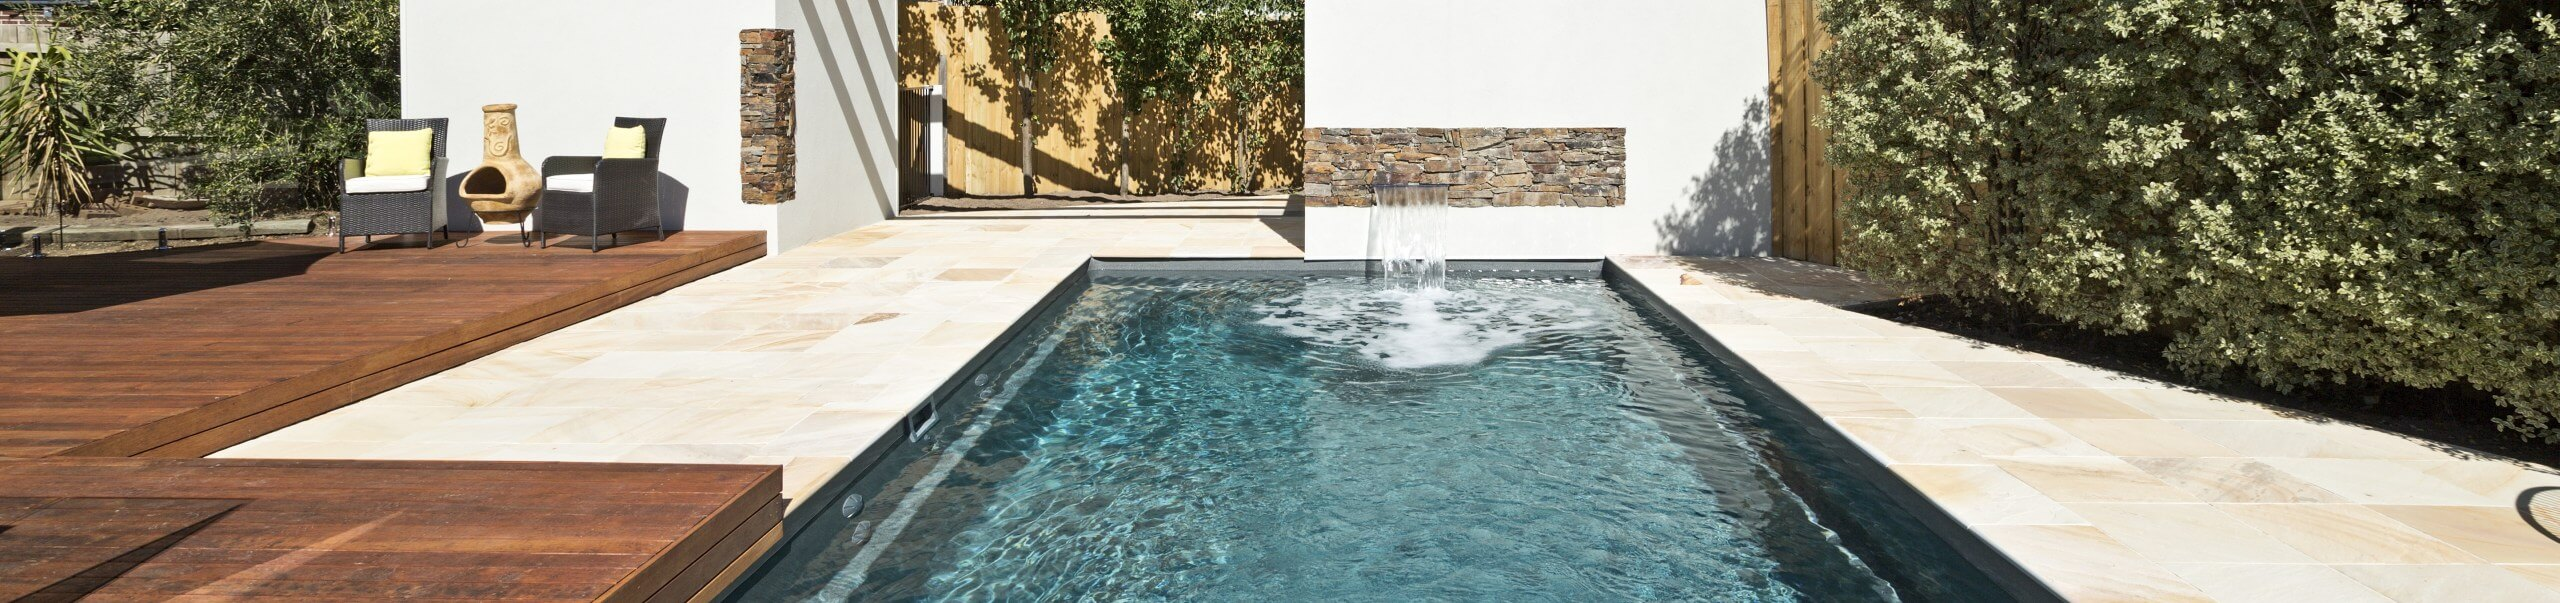 Inground Fibreglass Swimming Pools | Compass Pools